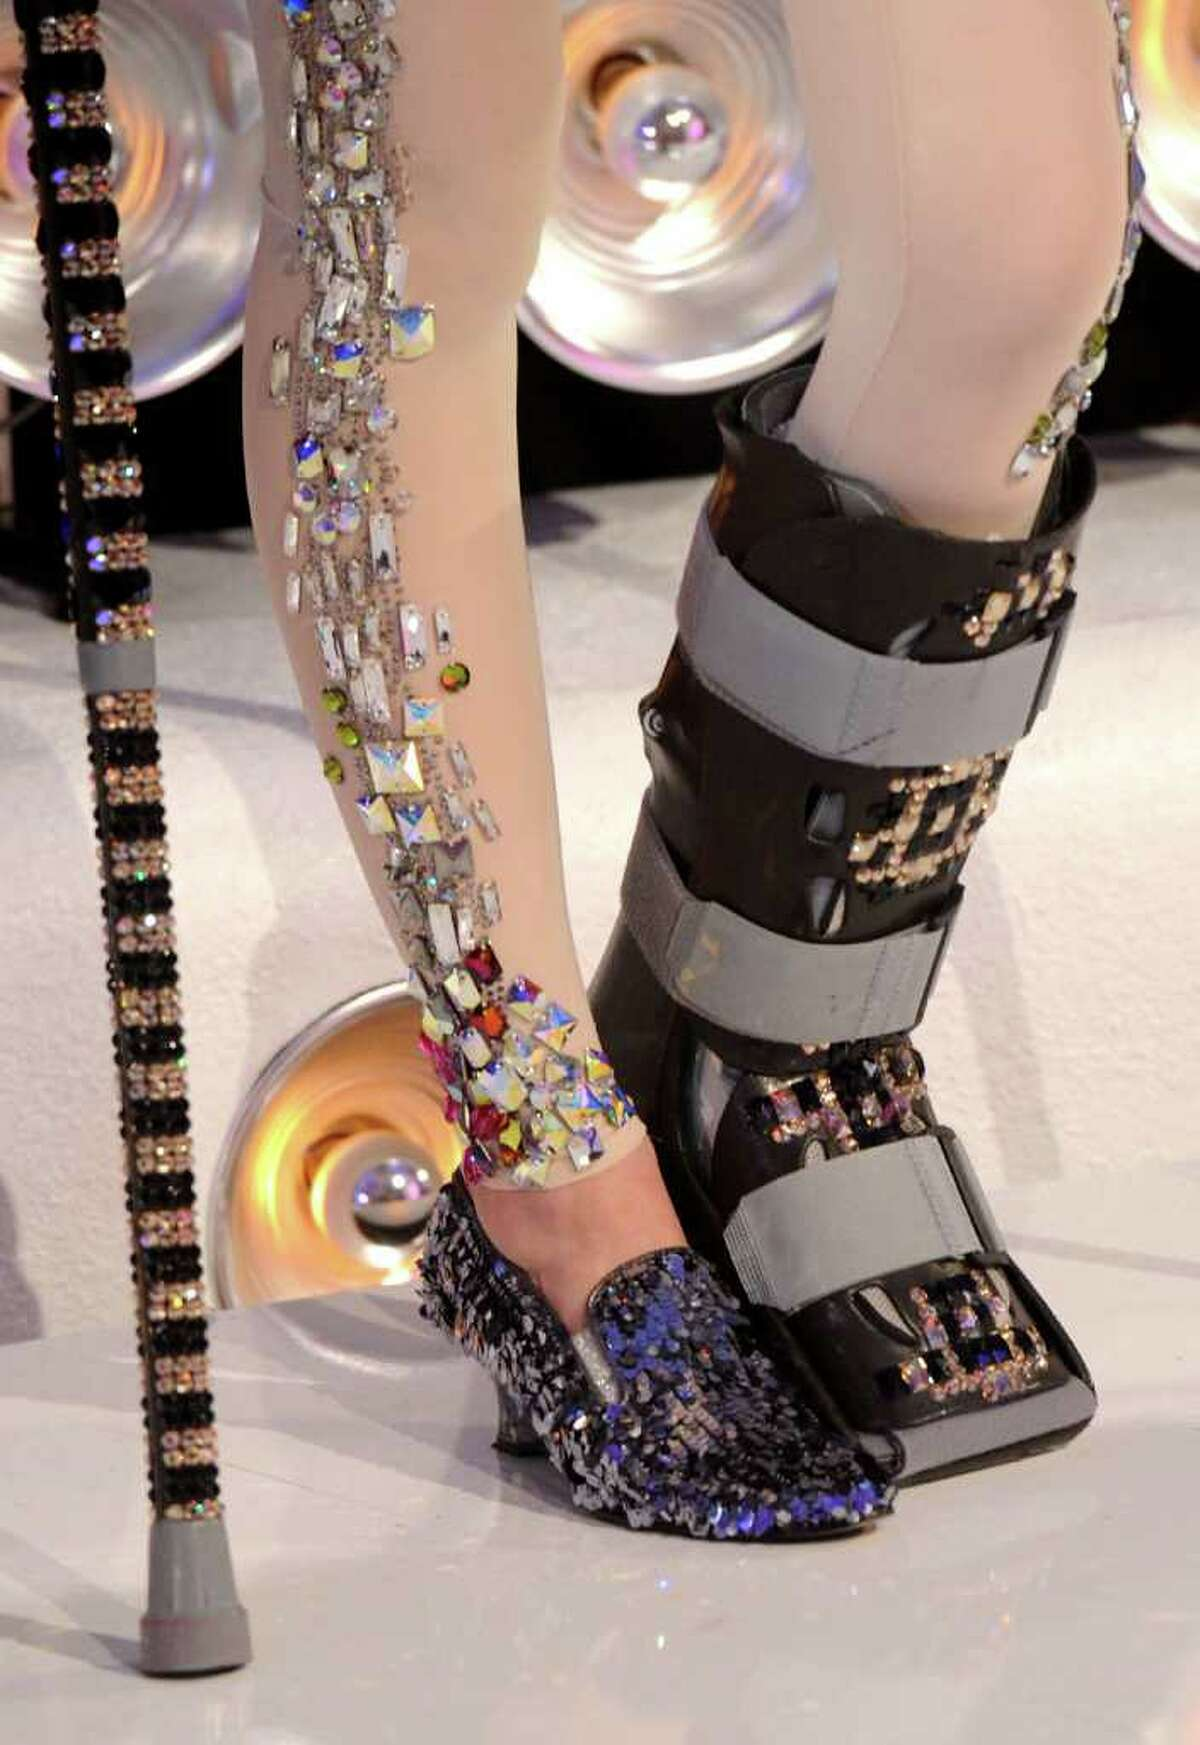 A close-up of Jessie J's cast and crutches, which were bedazzled in Swarovski crystals!